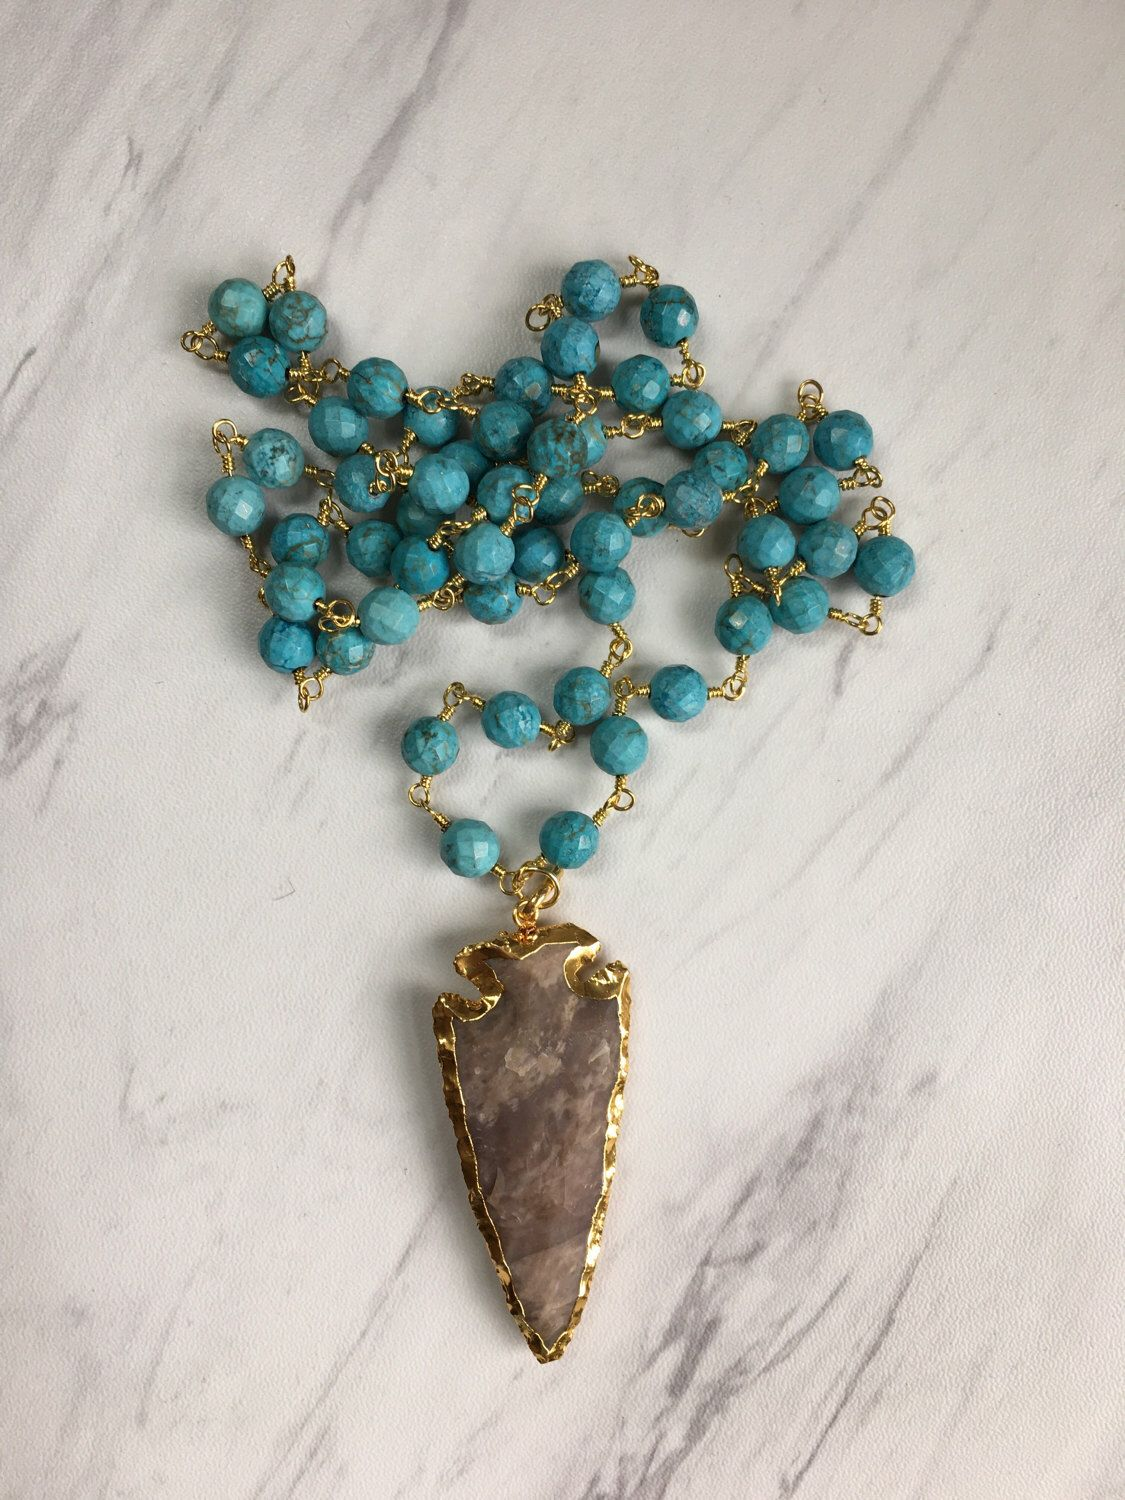 A personal favorite from my etsy shop sylisting